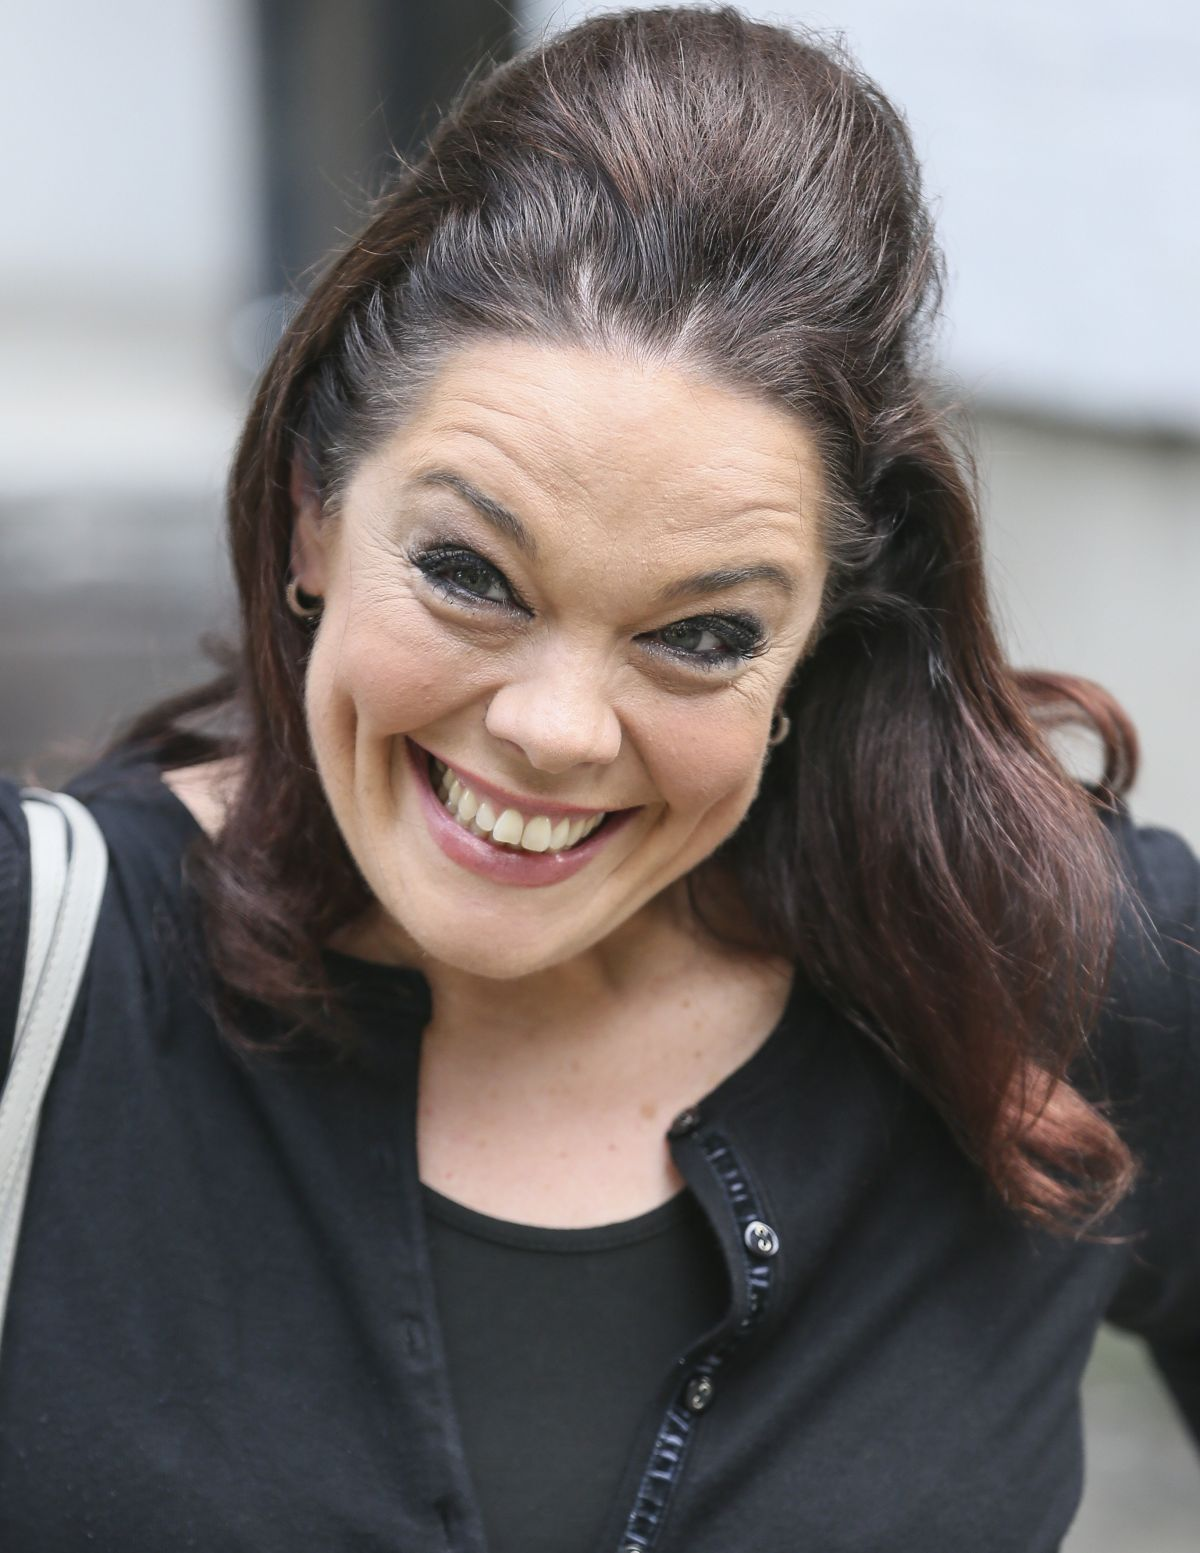 LISA RILEY at ITV Studios in London 08/16/2016